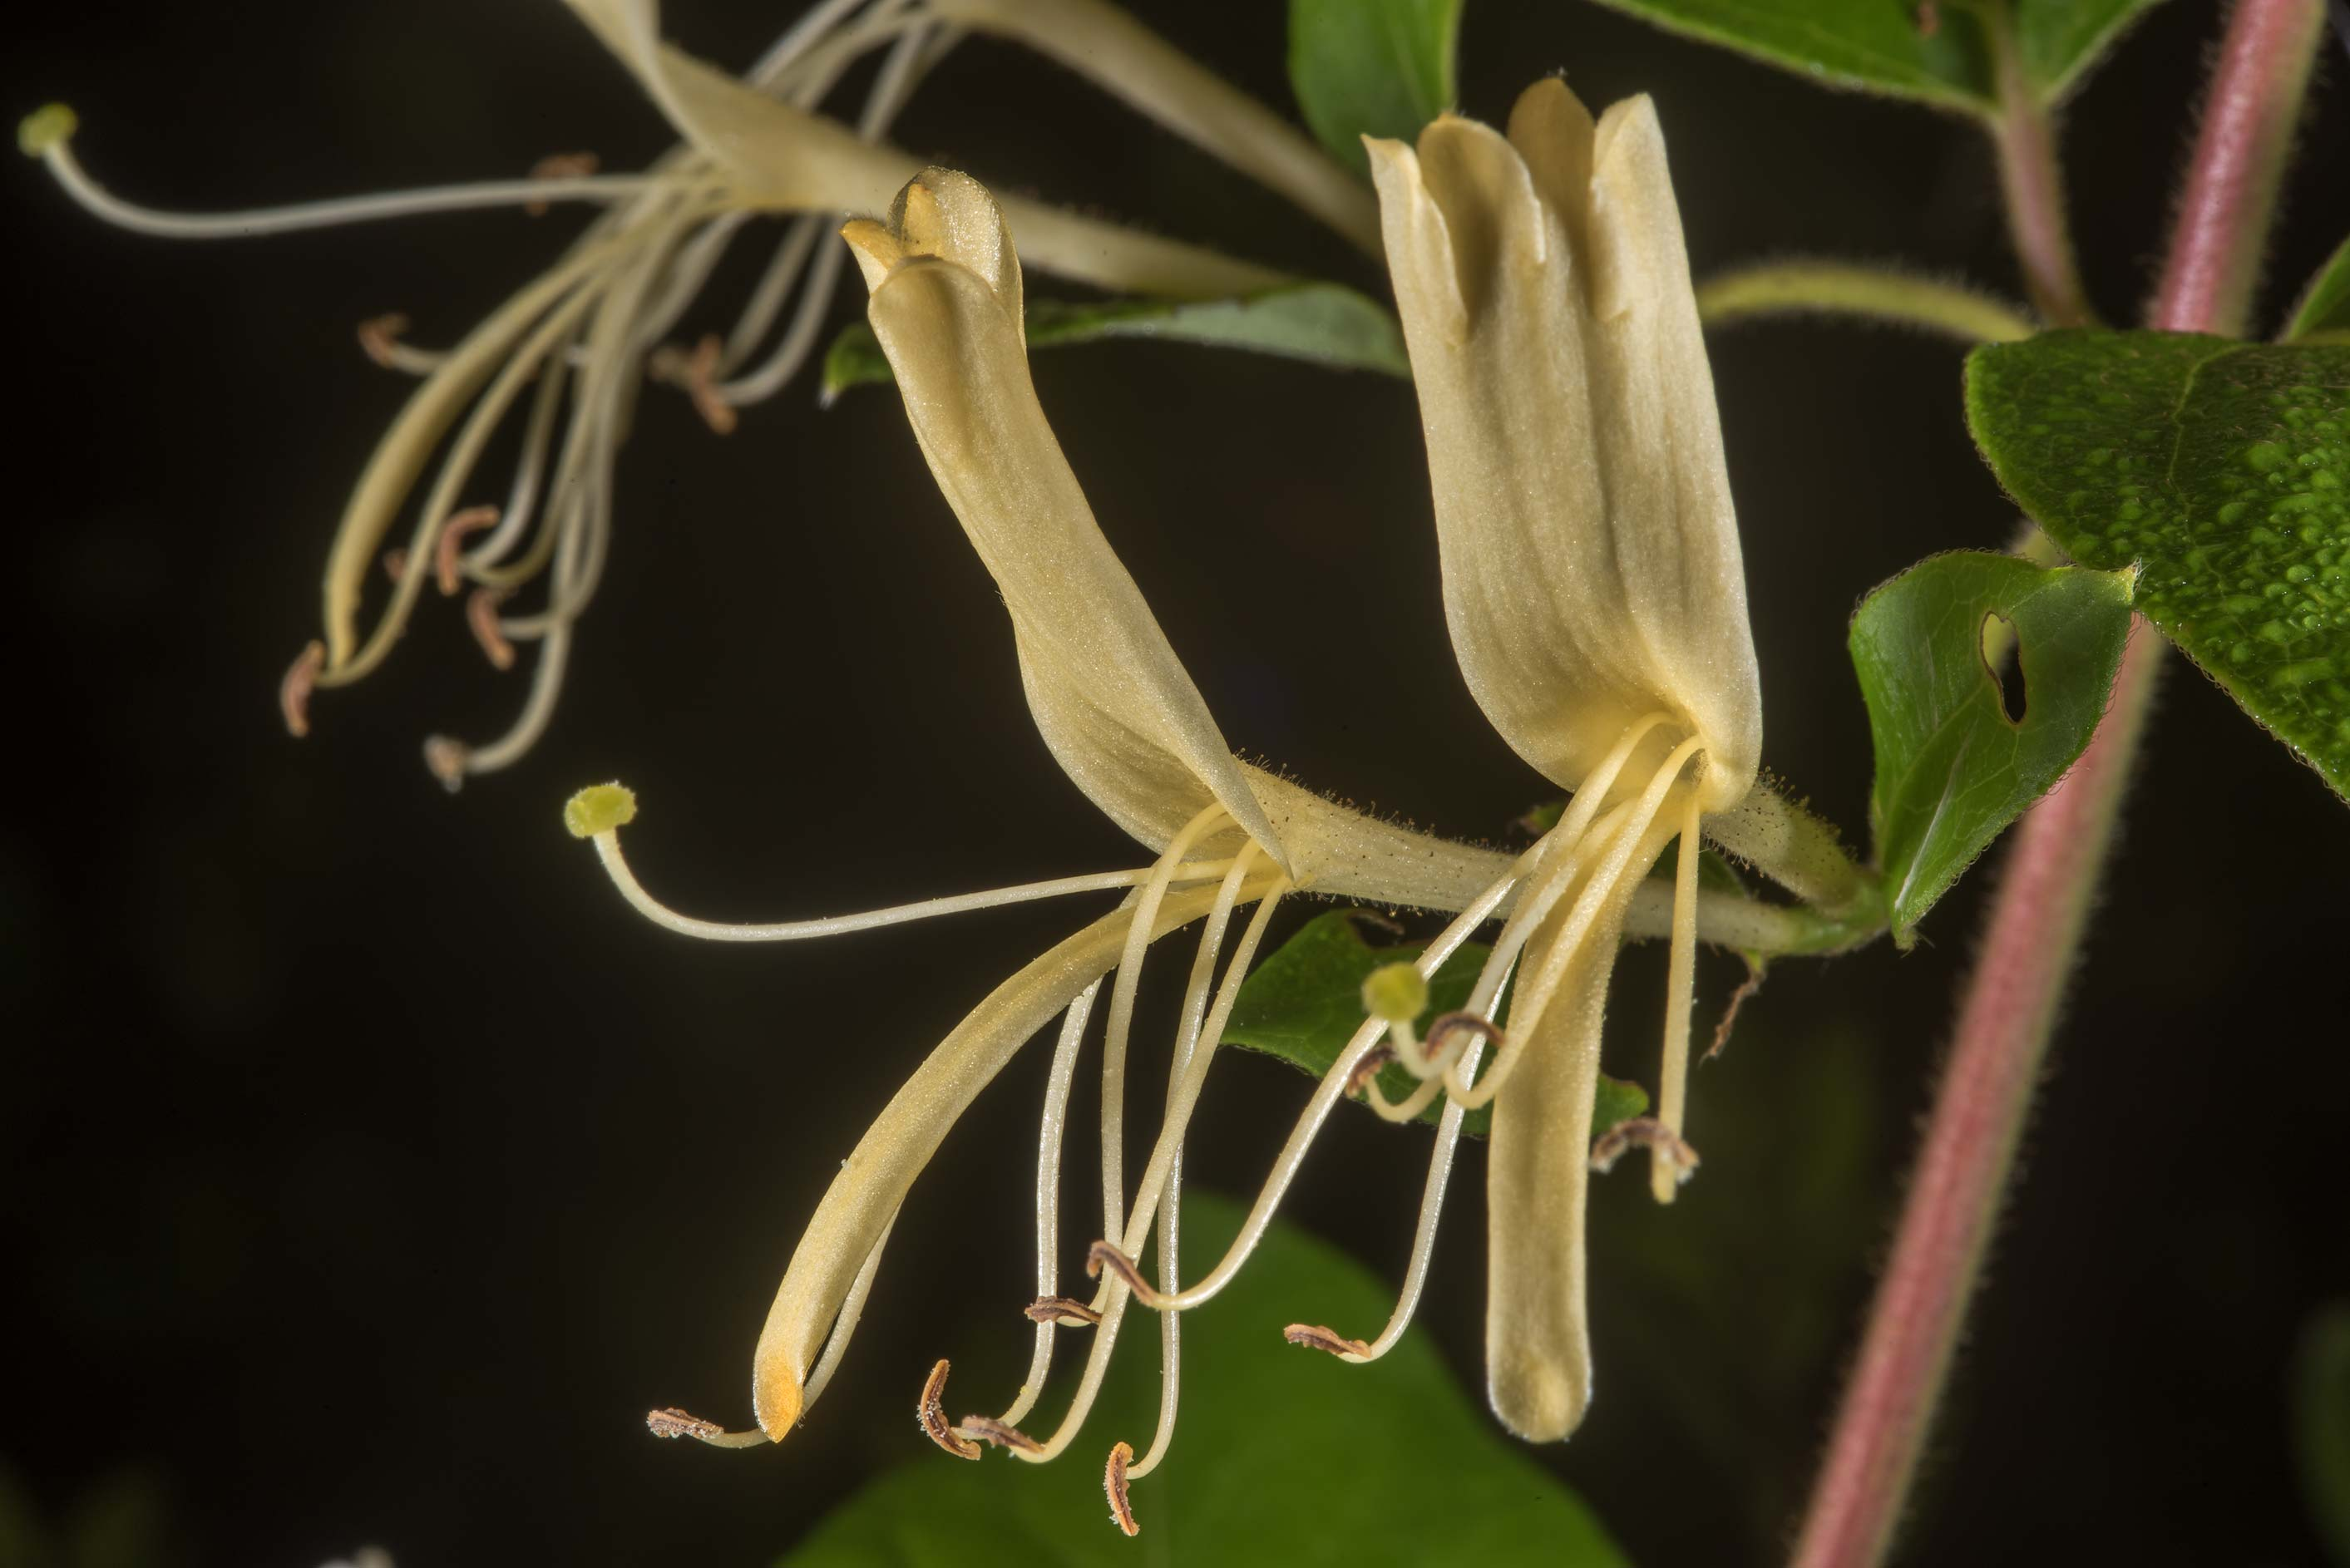 Japanese honeysuckle (Lonicera japonica) in Lick Creek Park. College Station, Texas